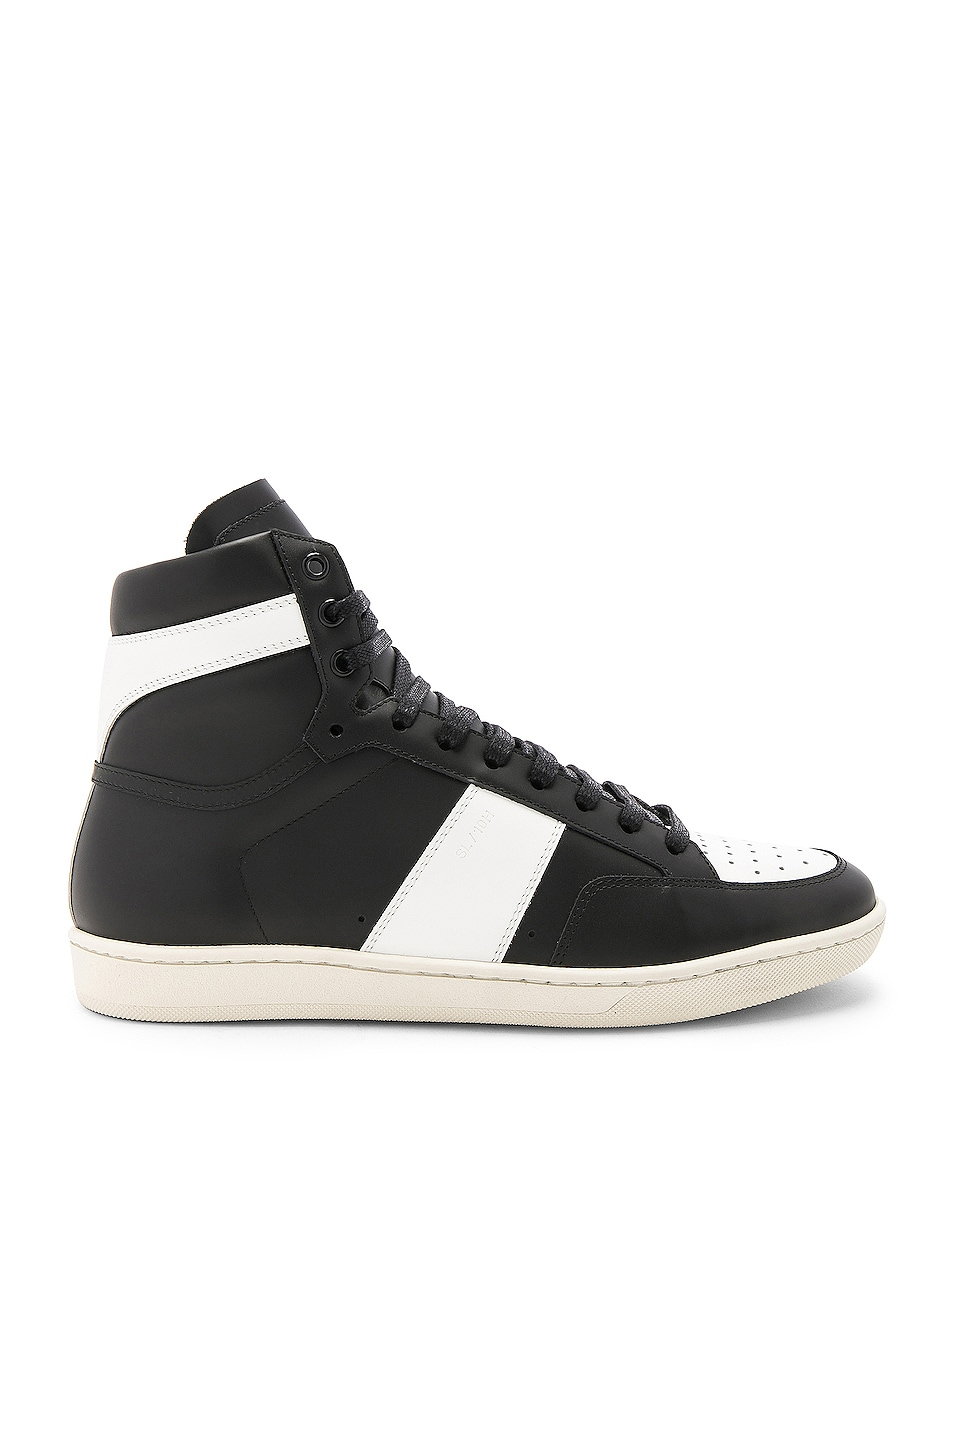 Image 1 of Saint Laurent Signature Court Classic SL/10H Leather High Top Sneakers in Black & White